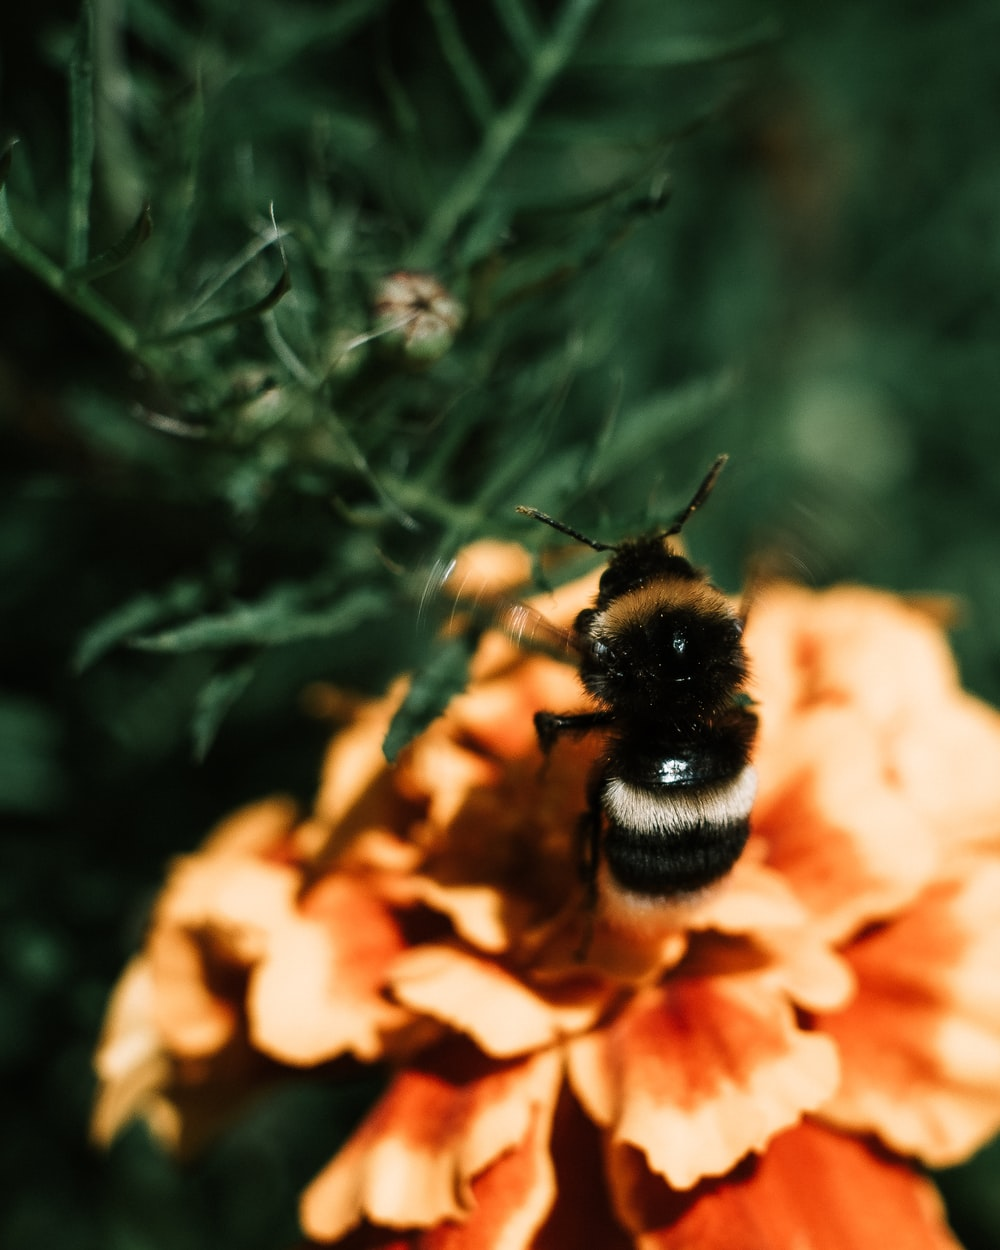 black and brown bee on flower